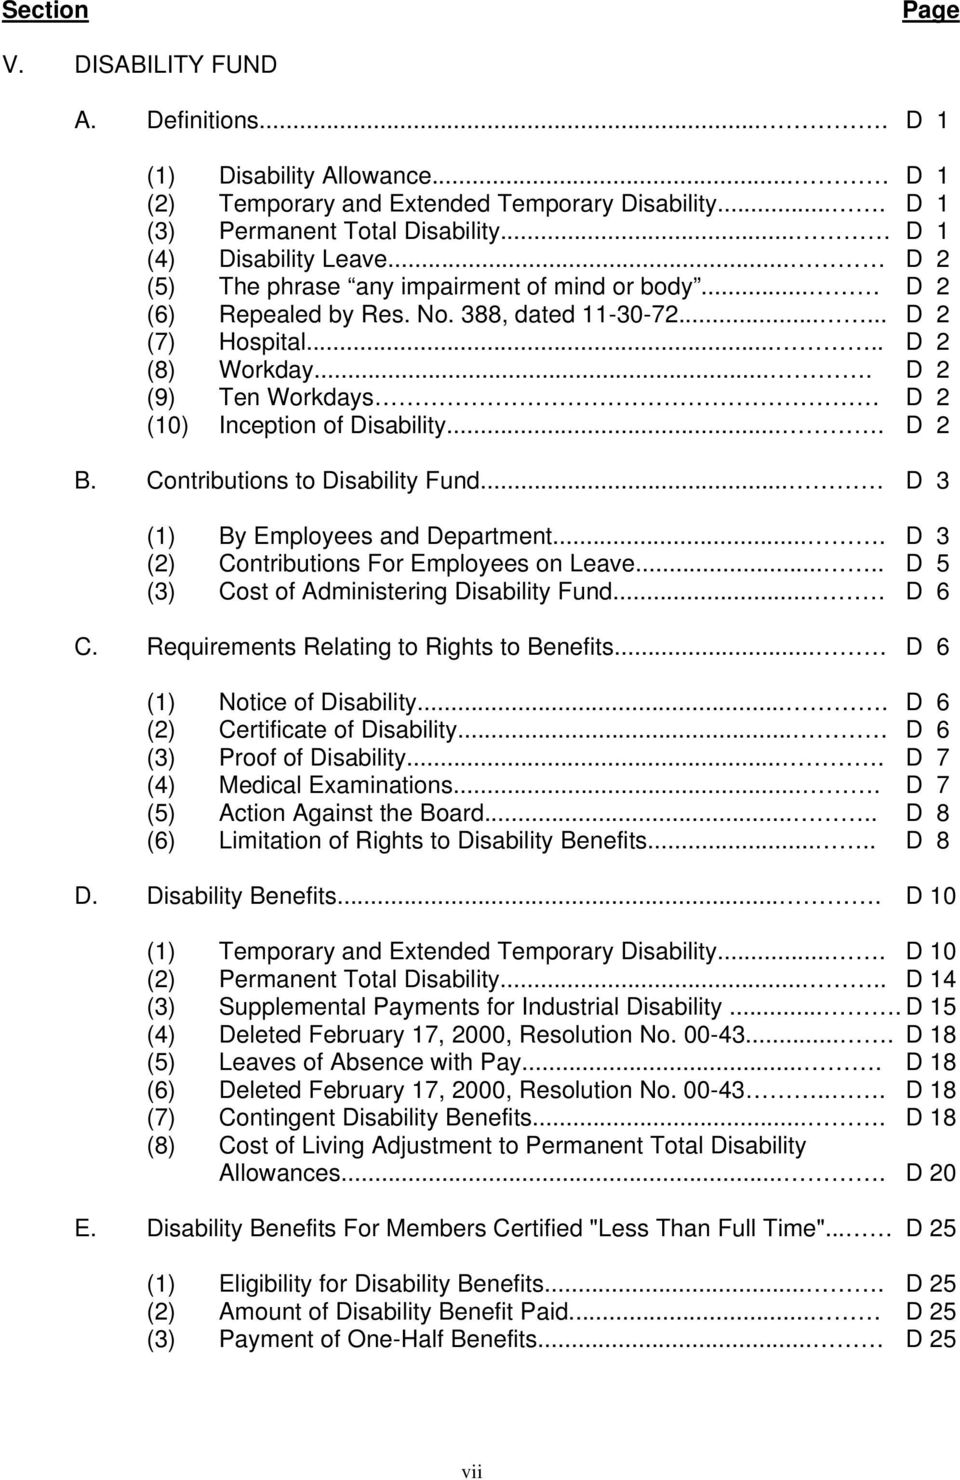 ... D 2 (9) Ten Workdays D 2 (10) Inception of Disability.... D 2 B. Contributions to Disability Fund... D 3 (1) By Employees and Department.... D 3 (2) Contributions For Employees on Leave.